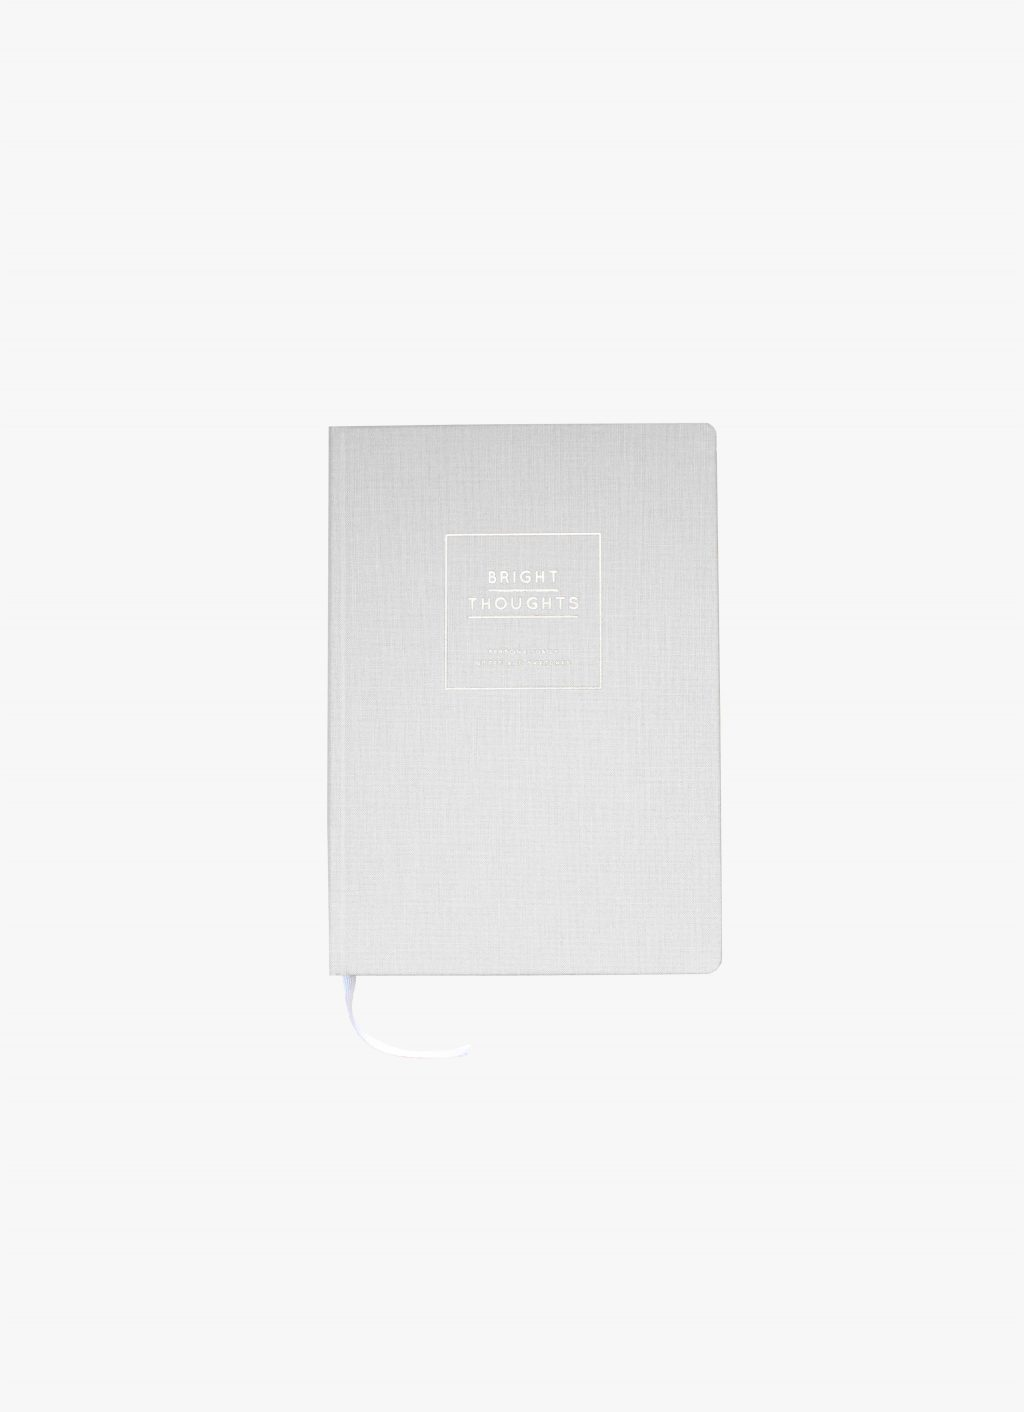 Navucko - Notebook - Bright Thoughts - Grey